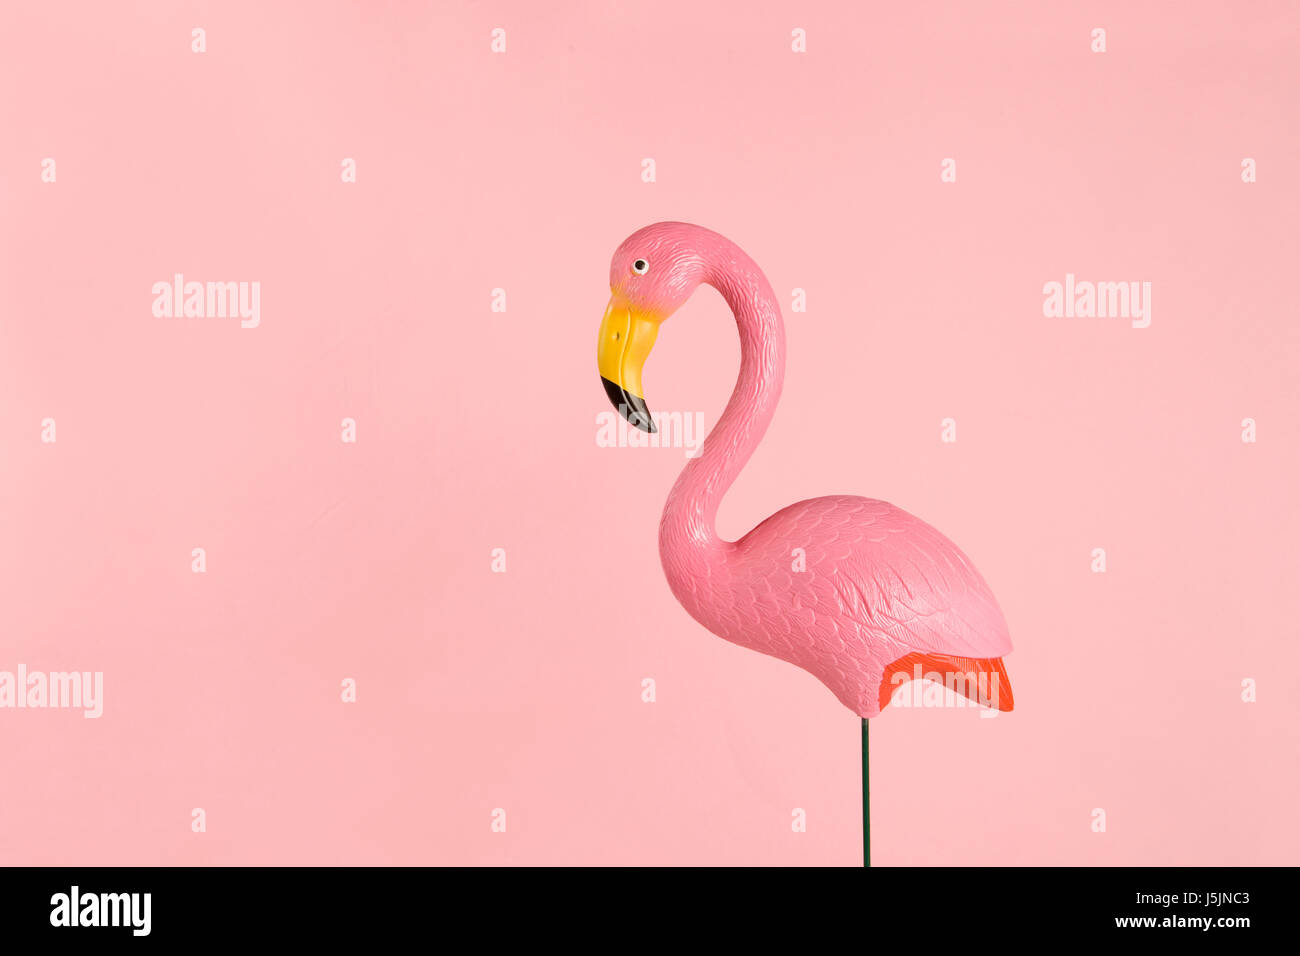 a pink plastic flamingo on a pink background. gradient and tones on tones - Stock Image